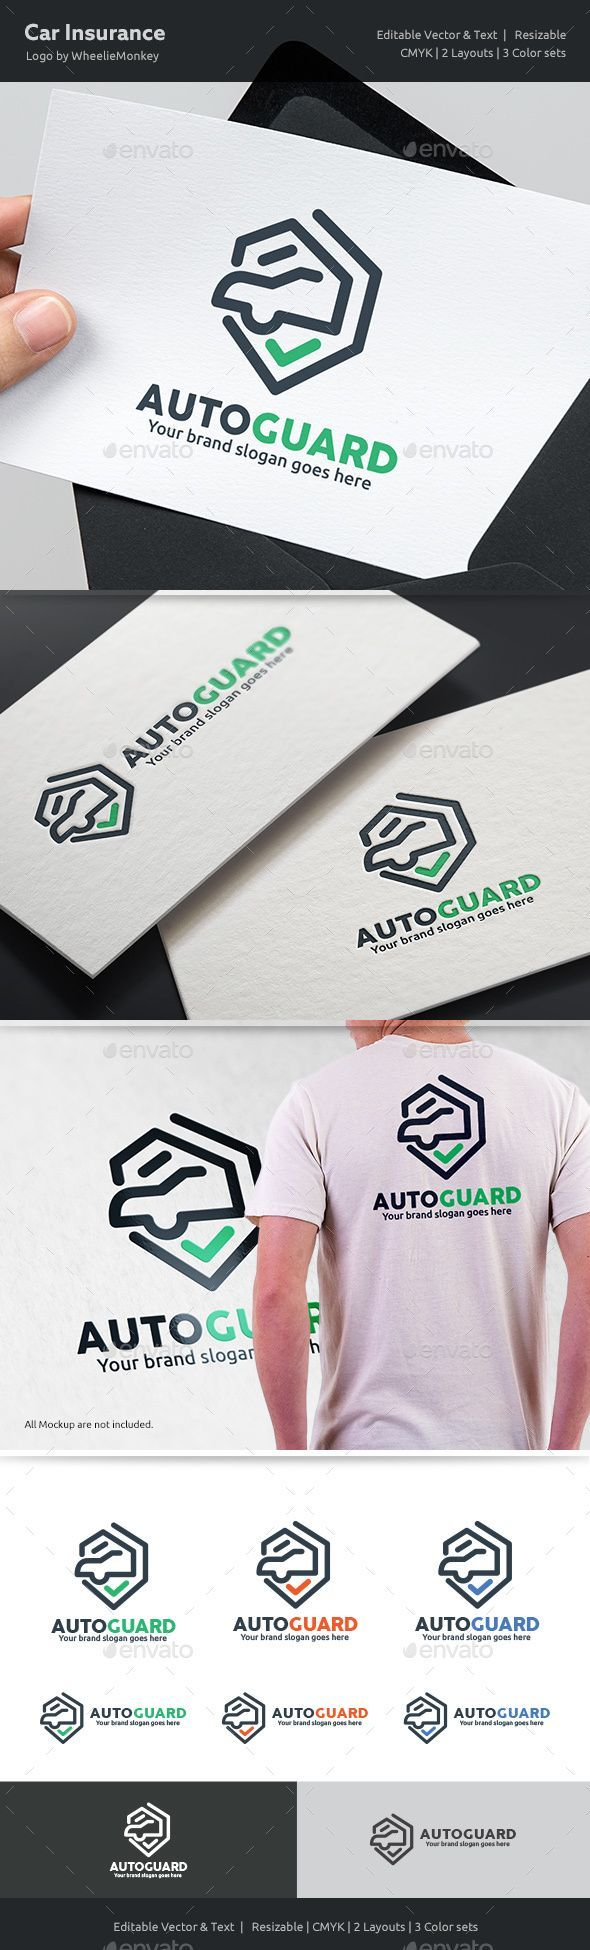 Car Insurance Logo by WheelieMonkey Files format : EPS 10, EPS CS, EPS CS4, EPS CS6, AI CS4 Color mode : CMYK Resolution : 300PPI Resizable Free used font links